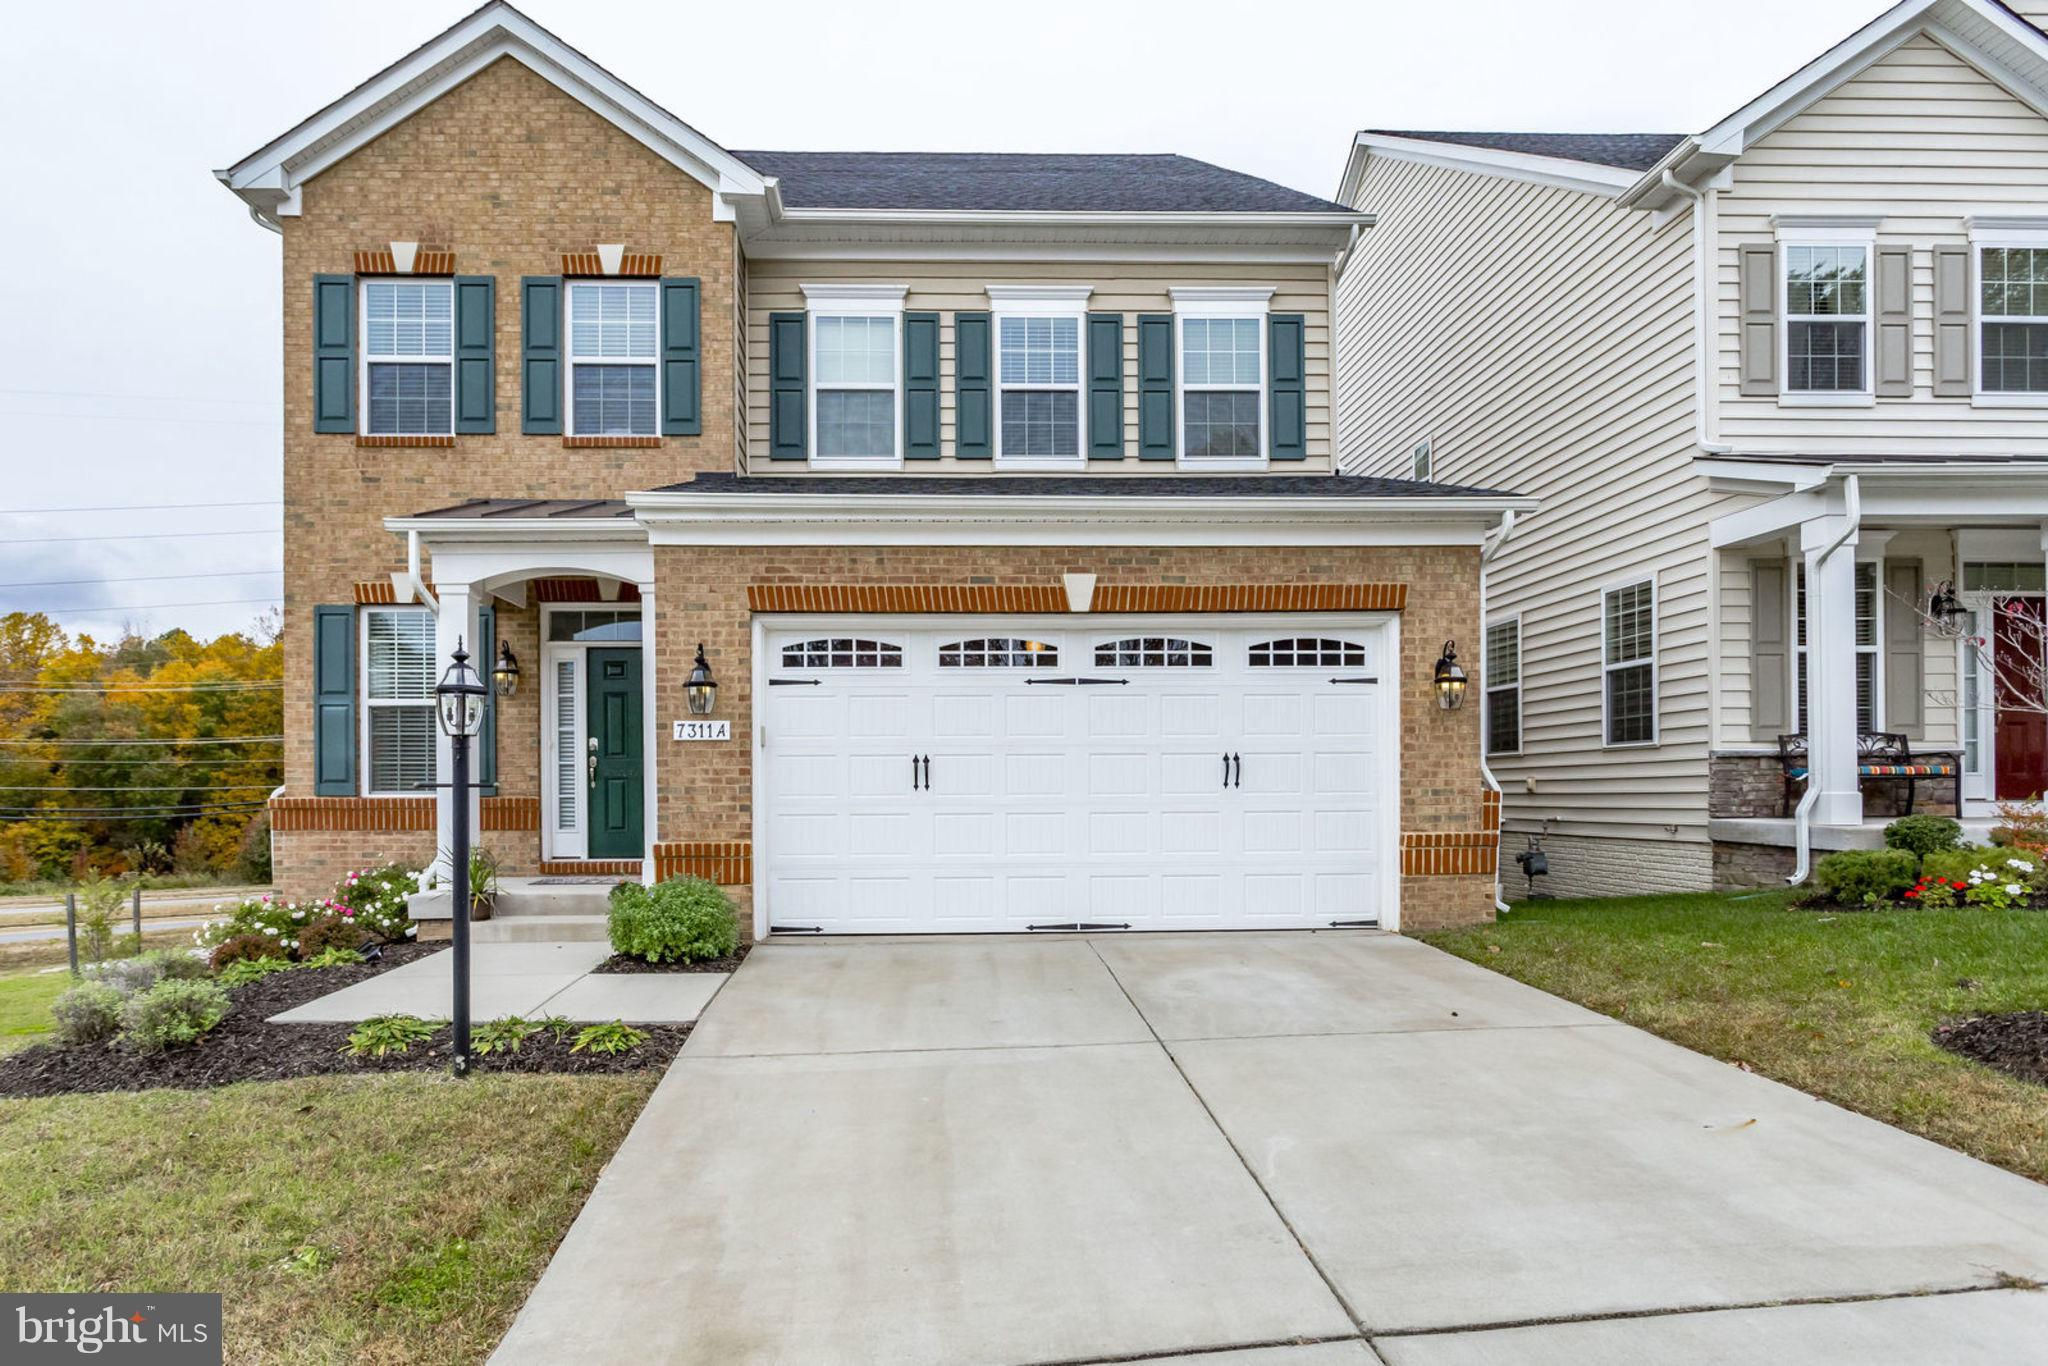 Spacious Four Level Home In Sought-After Area! Gourmet Ktchn w Granite Ctps, Brkfst Bar, SS Applncs and Custom Hrdwd Flrs and Cabinets. Recessed Lghtng Thrghout Home. Wlkout Deck w Plnty of Rm for Entrtnmnt and Lots of Privacy. Multiple Mstr Bdrms. Extra Upper Lvl w Bdrms and Bath! Expansive Bsmnt w Granite Wet Bar. Ample Storage. Wlkout to Bckyrd Backing to Trees. Minutes to I95 and Metro!